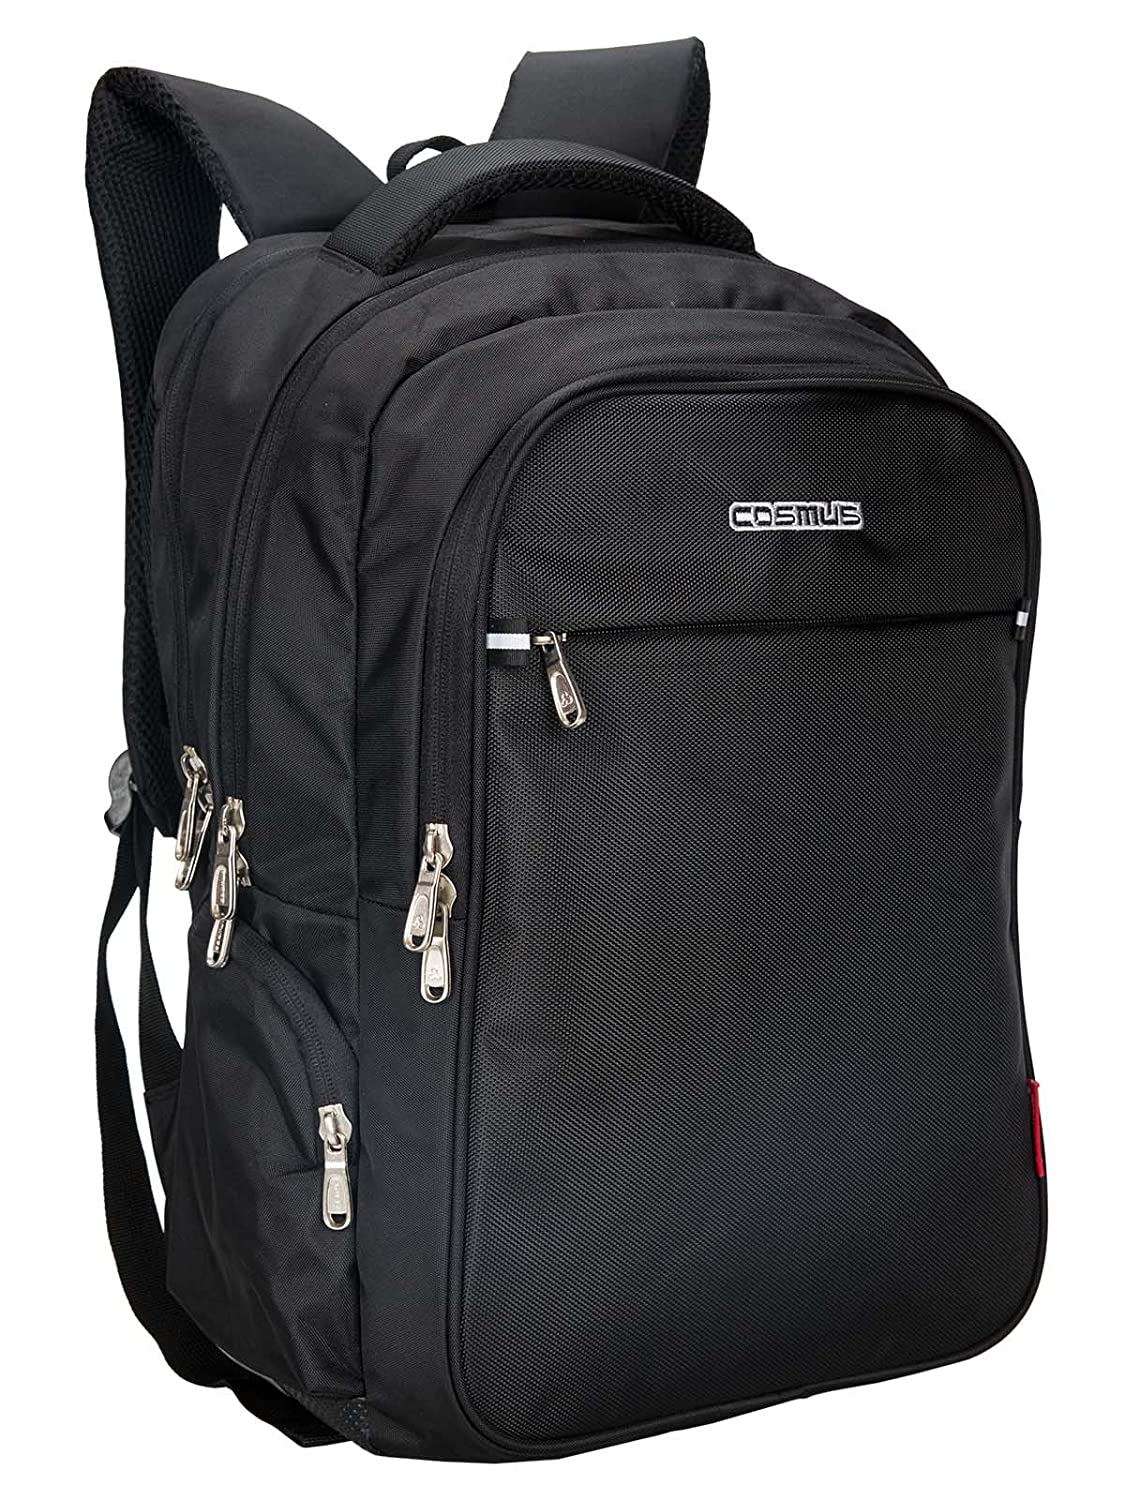 Cosmus Atomic Dx 3 Compartment Large Laptop Bag - Black Polyester  Waterproof Laptop Backpack  Amazon.in  Bags 04d5fc0b53a38